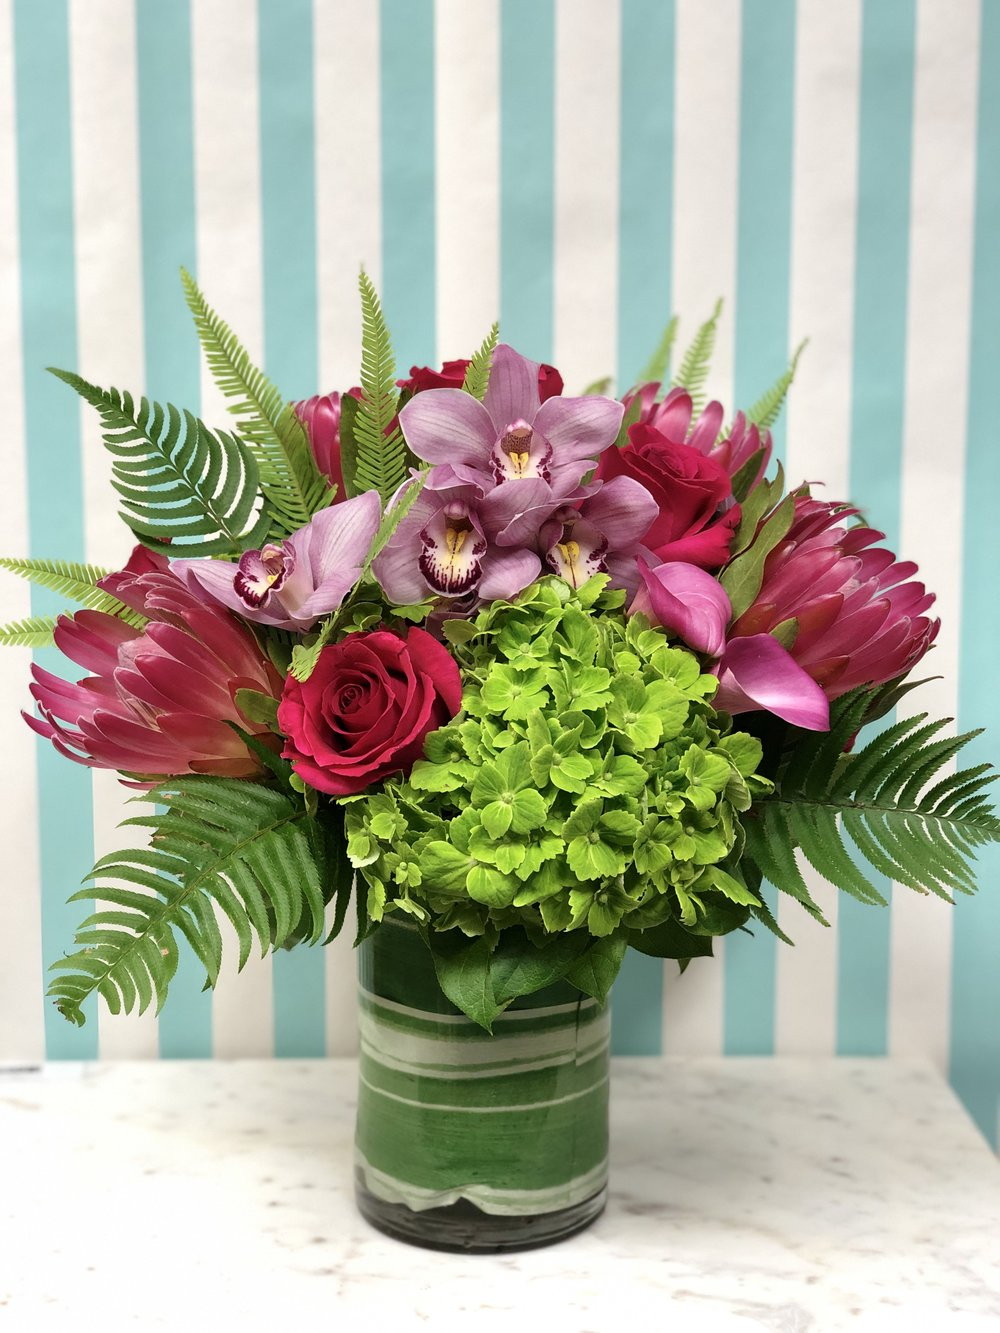 Jungle Love- $225   This modern selection of tropical flowers will be sure to please the most discerning Valentine. Protea, cymbidium, mini callas, hydrangea, rose, and fern in an 8x6 vase.